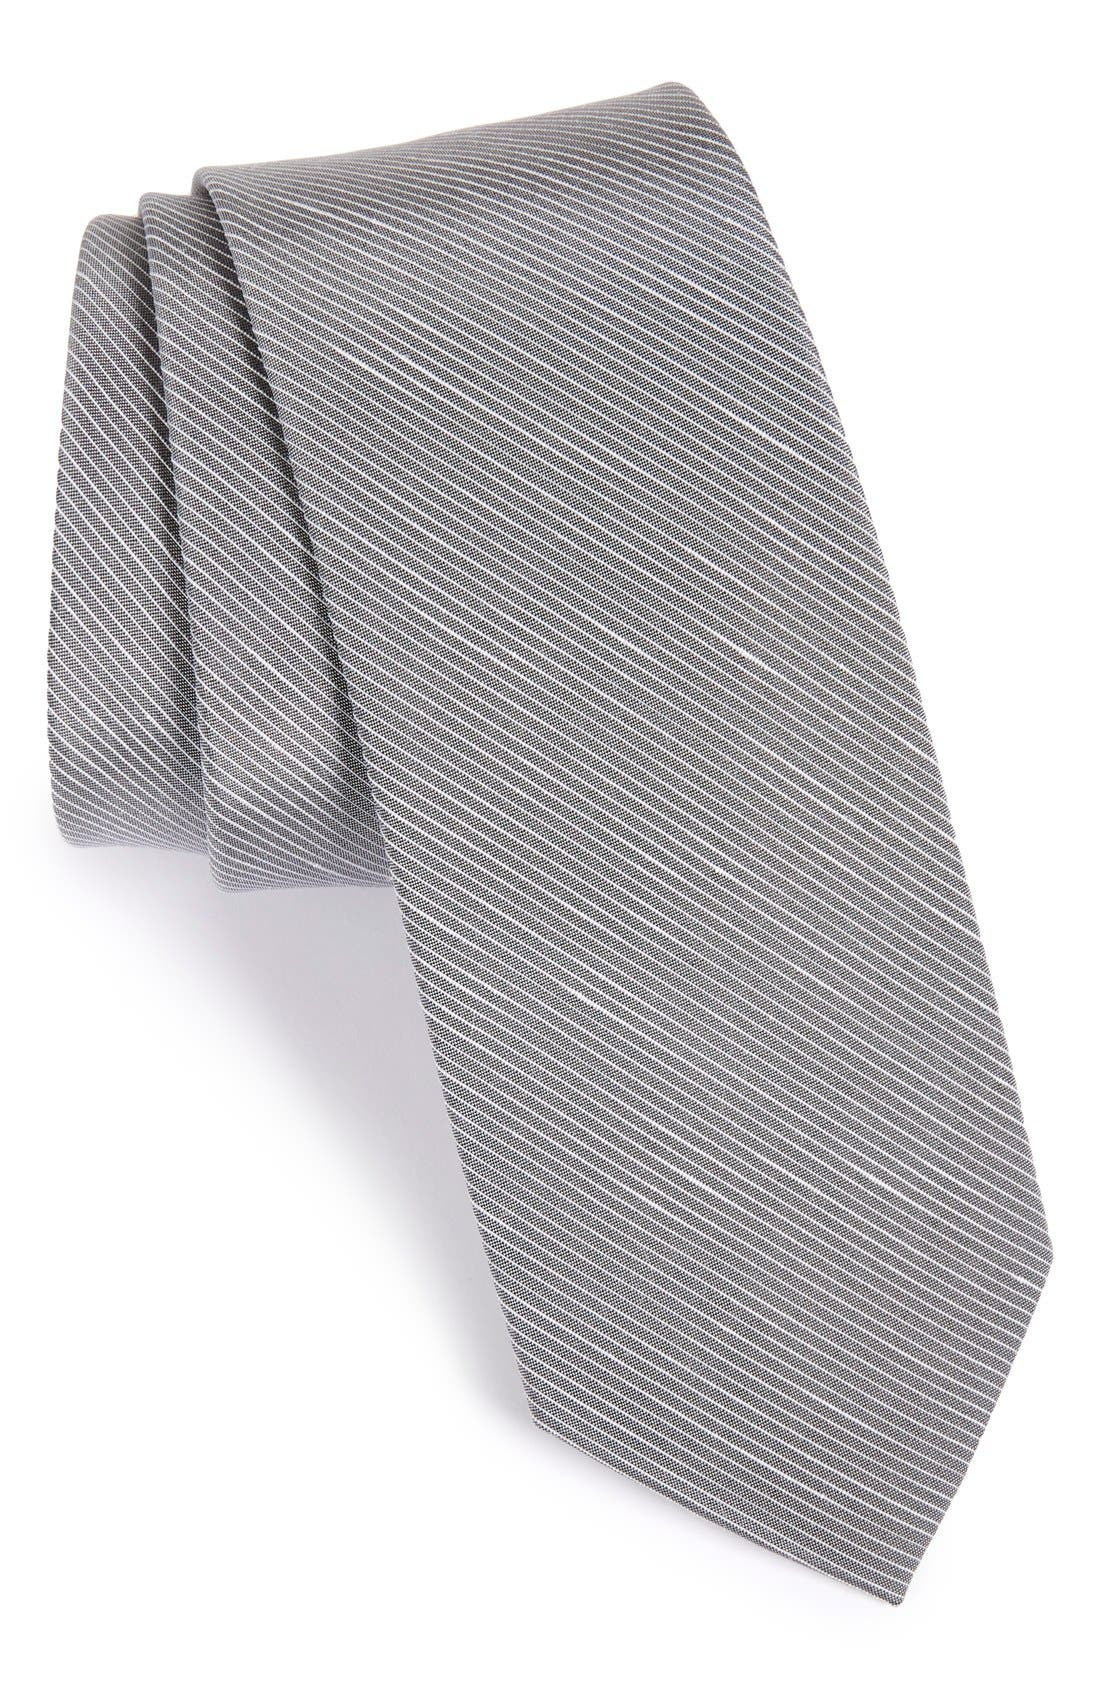 Pinstripe Silk & Linen Tie,                         Main,                         color, 040